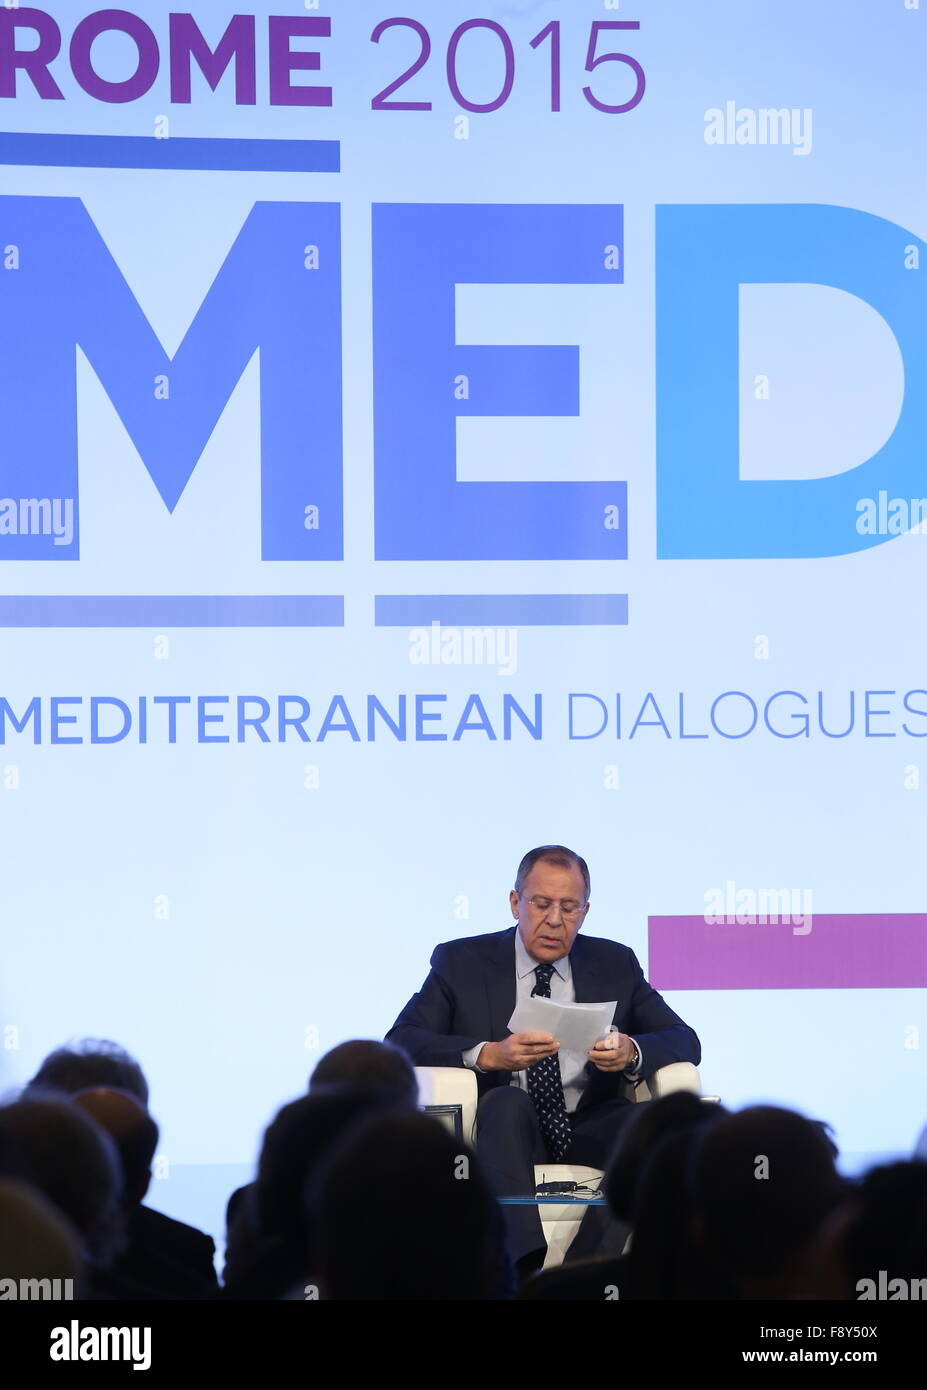 Rome, Italy. 11th Dec, 2015. Russia's Foreign Minister Sergei Lavrov attends the Rome 2015 MED - Mediterranean - Stock Image